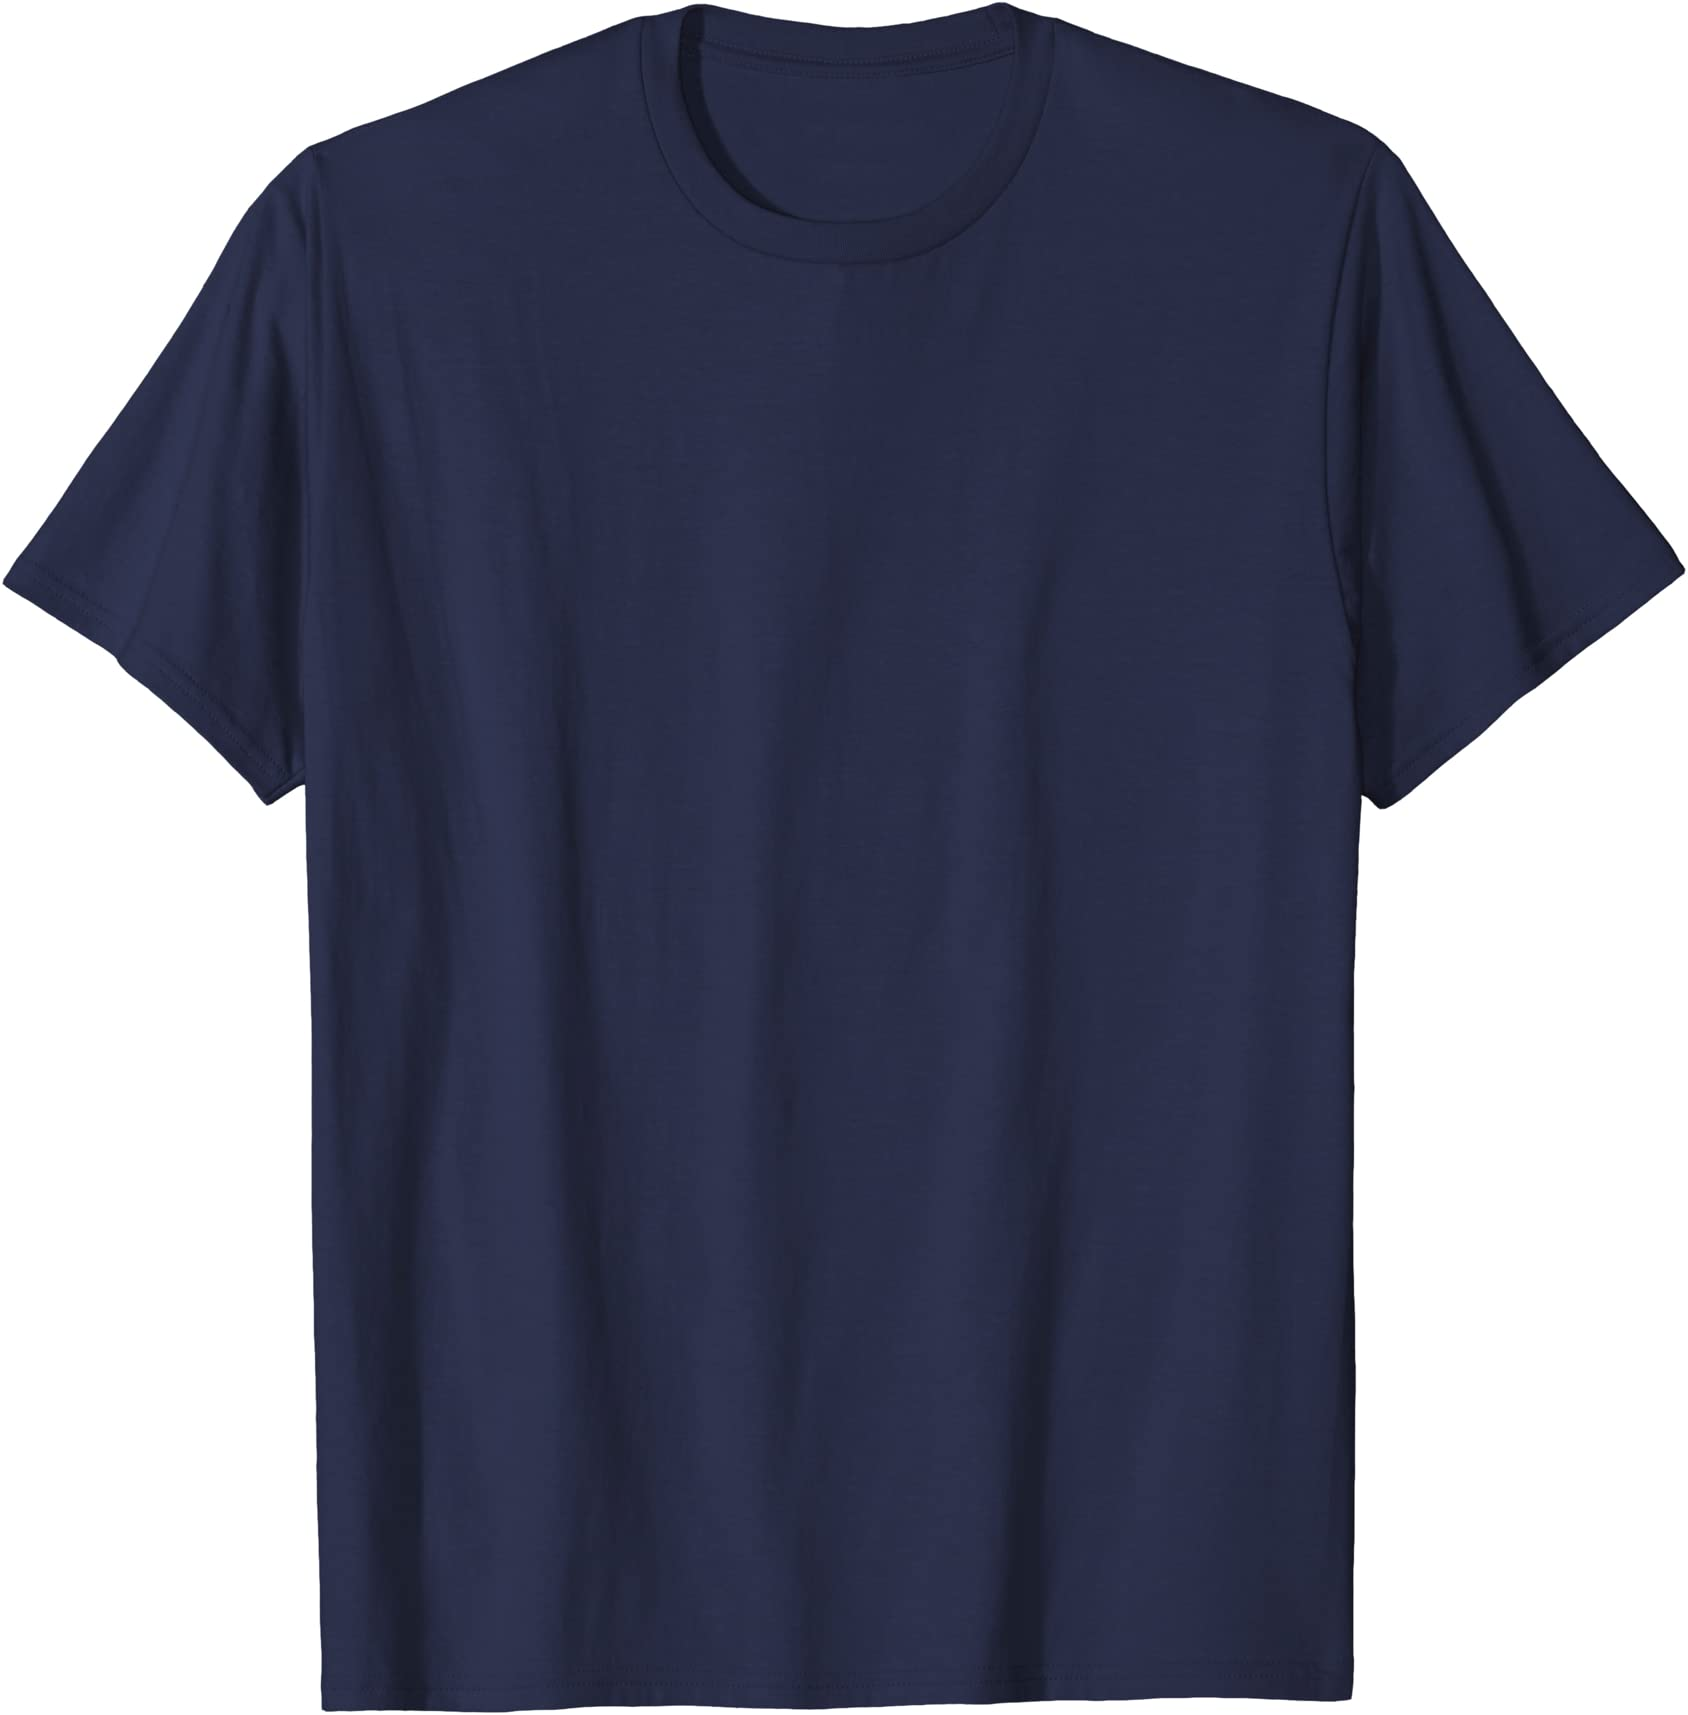 Luxembourg text T-Shirt